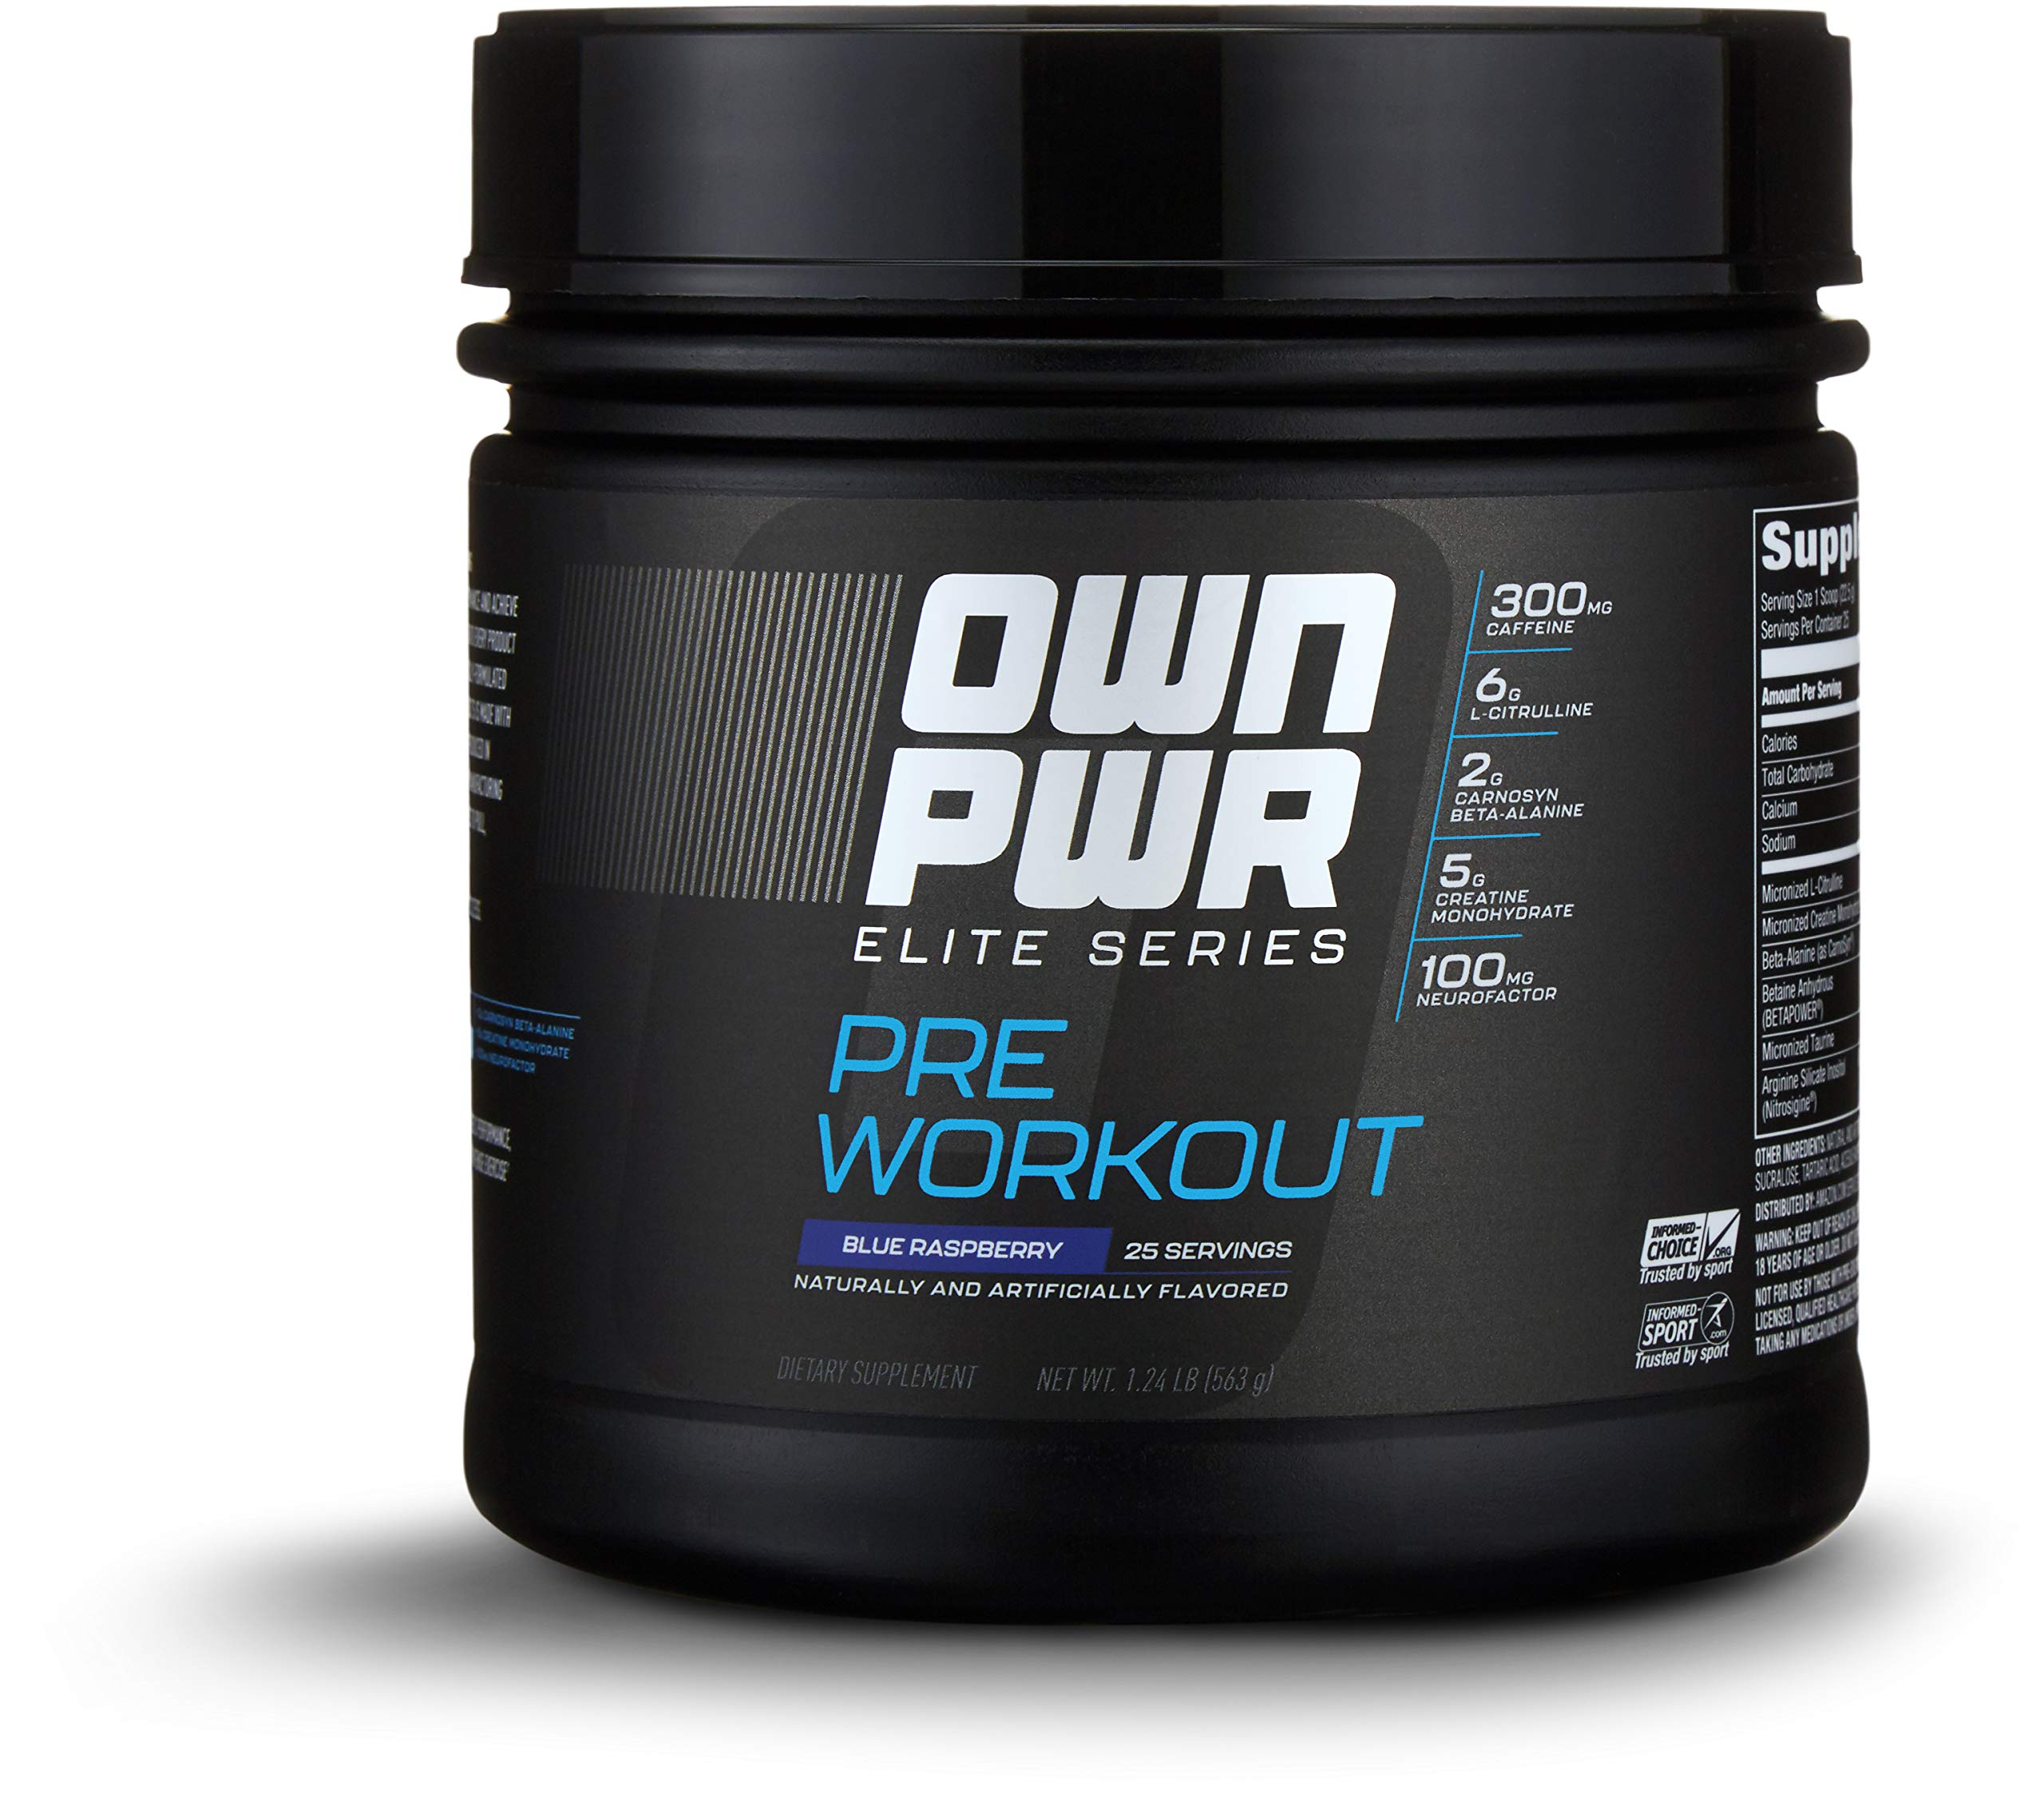 OWN PWR Elite Series Pre Workout Powder, Blue Raspberry, 25 Servings, Keto Friendly, 5G Creatine, 2G Beta Alanine (as CarnoSyn), 300mg Caffeine & more